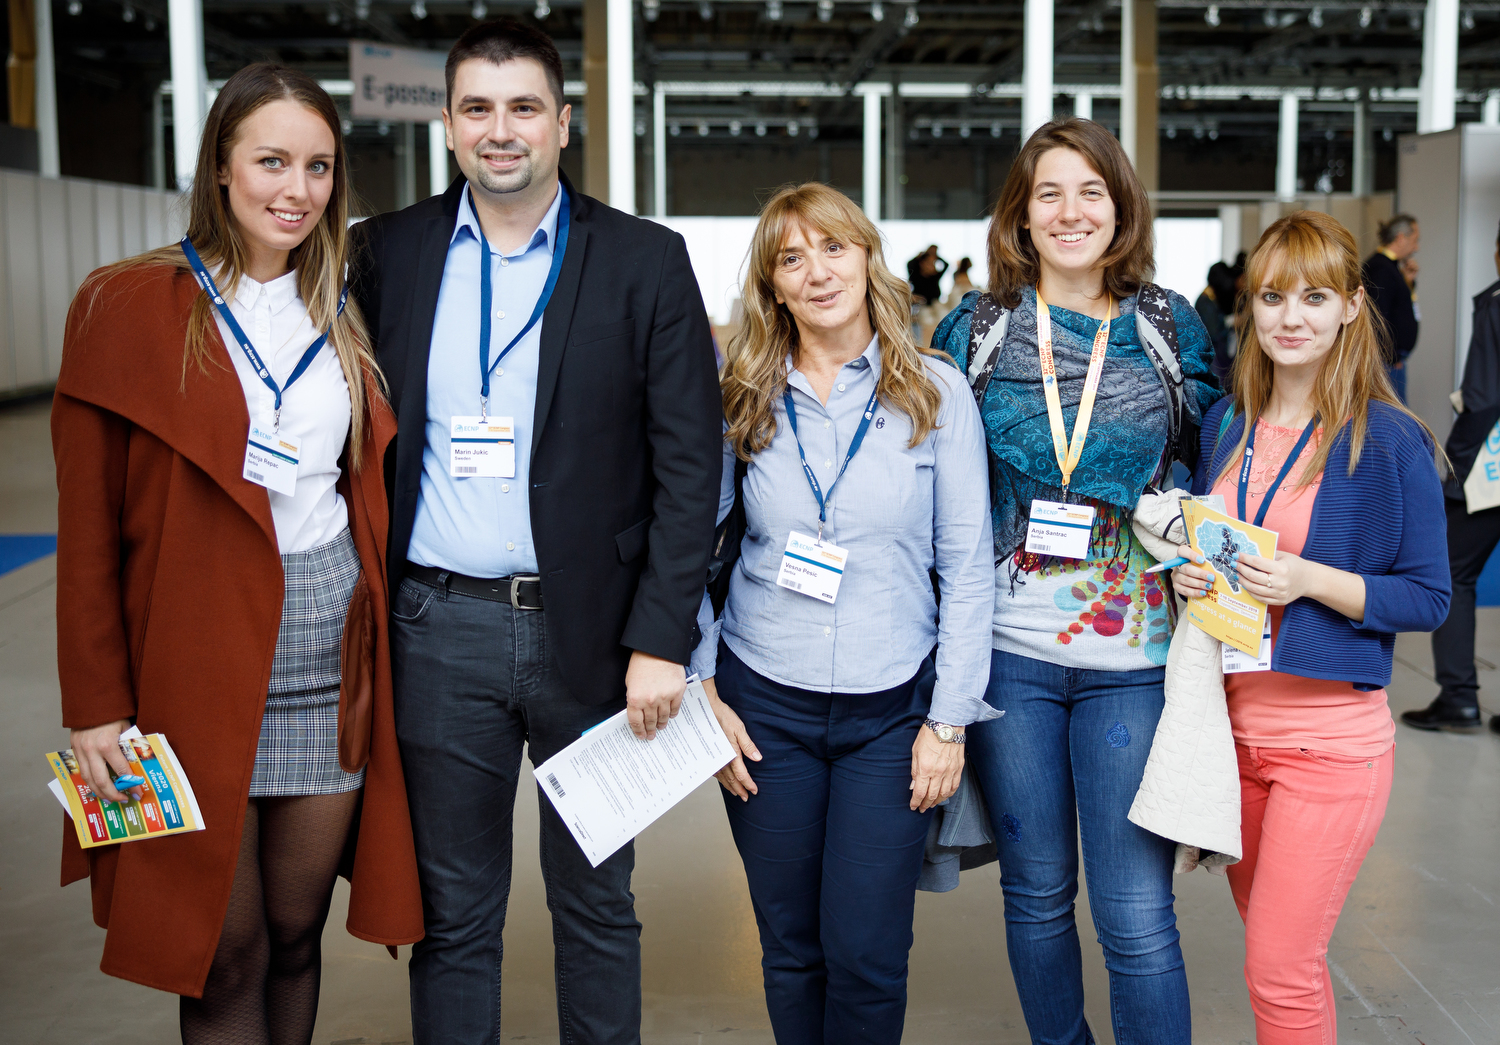 Early Career Scientists at the congress